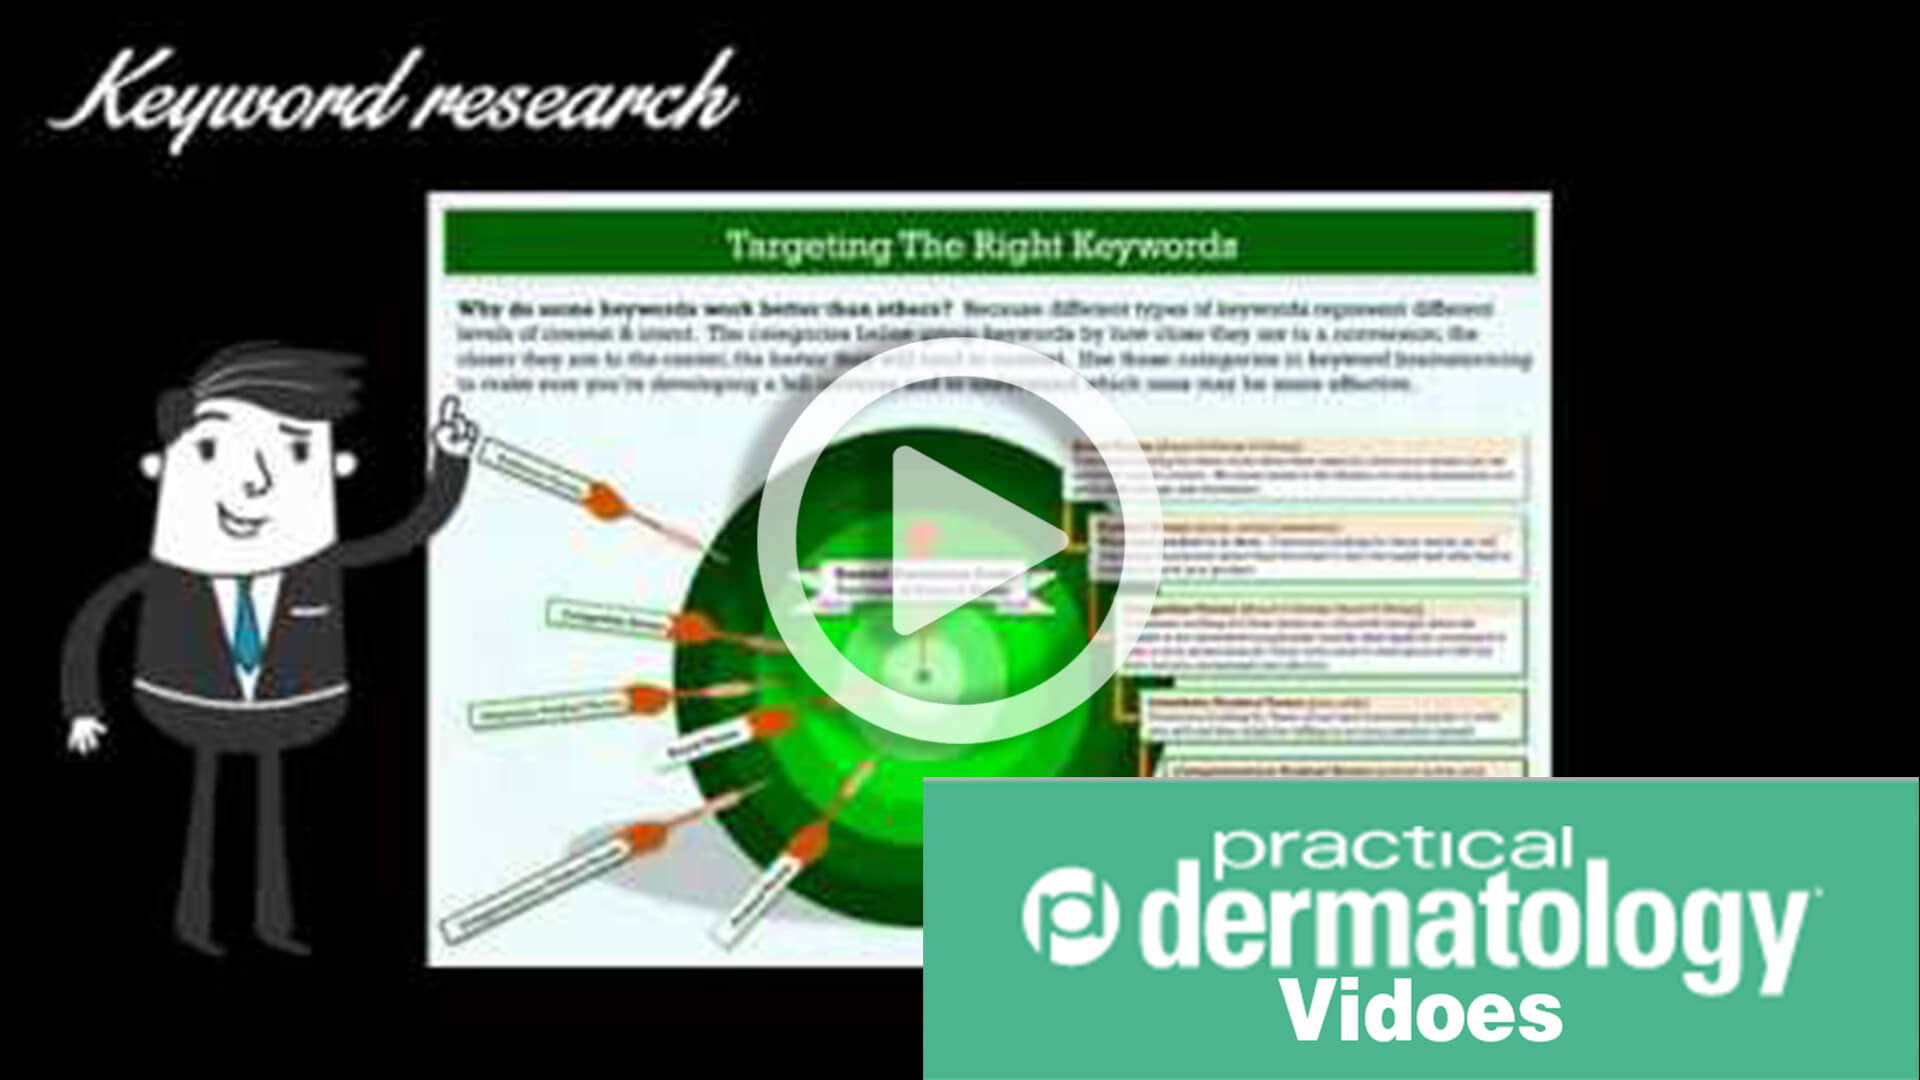 2014 SEO Playbook: On-Page Factors